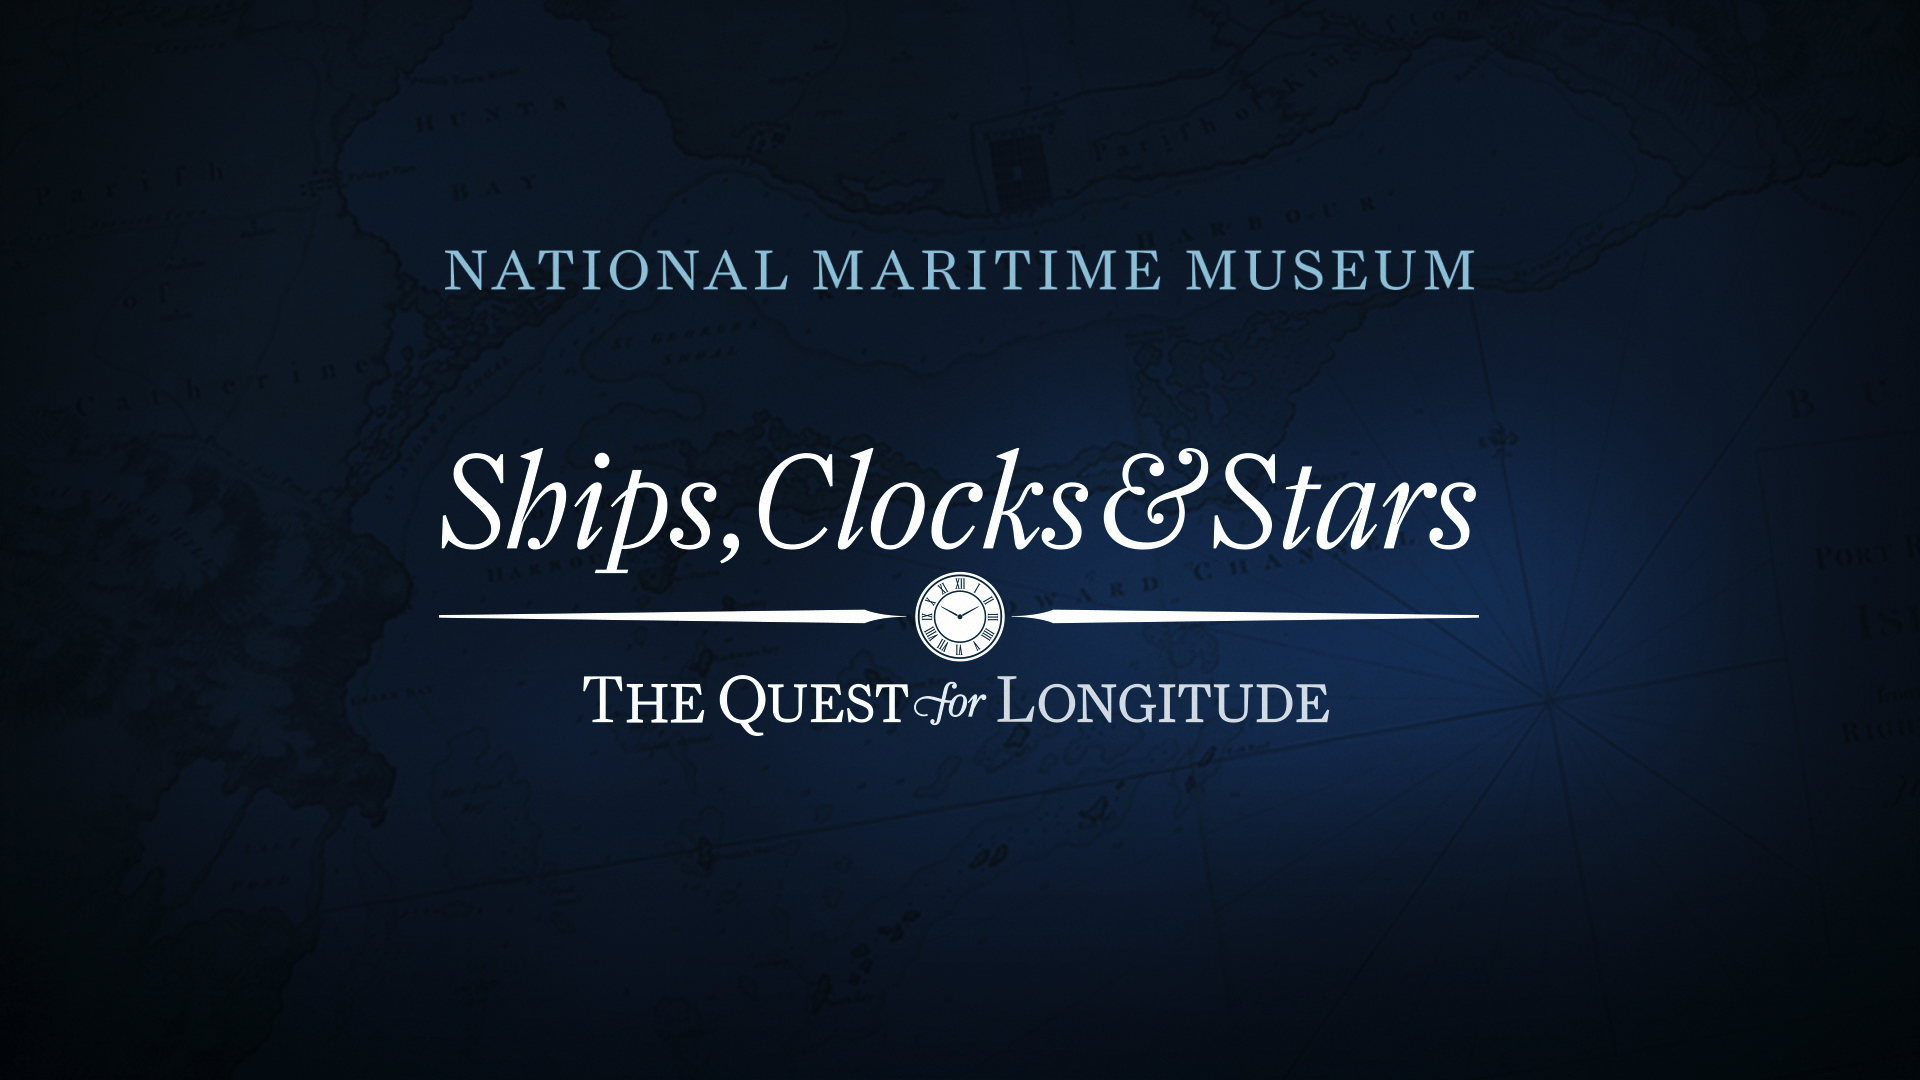 NMM Ships clocks and stars frames13